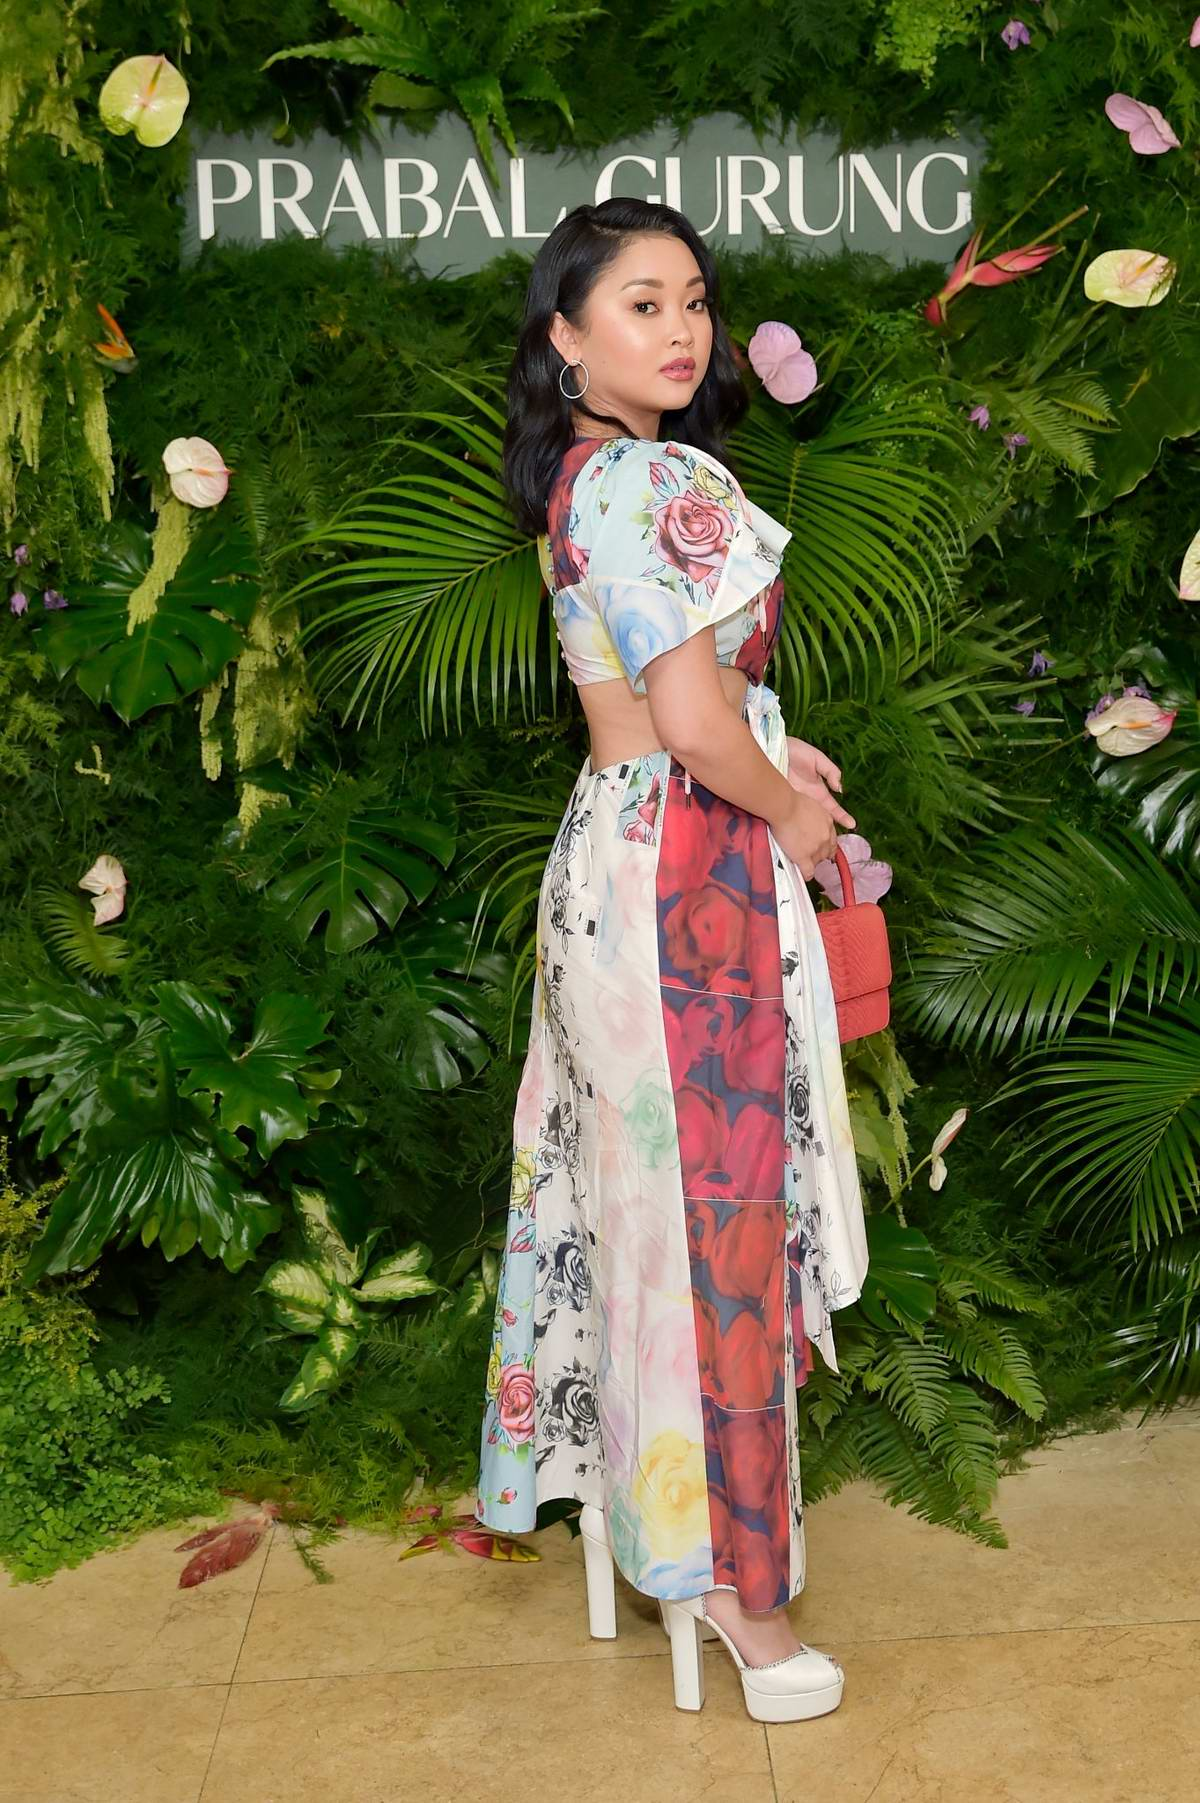 Lana Condor attends Prabal Gurung's 10 years Celebration in West Hollywood, Los Angeles